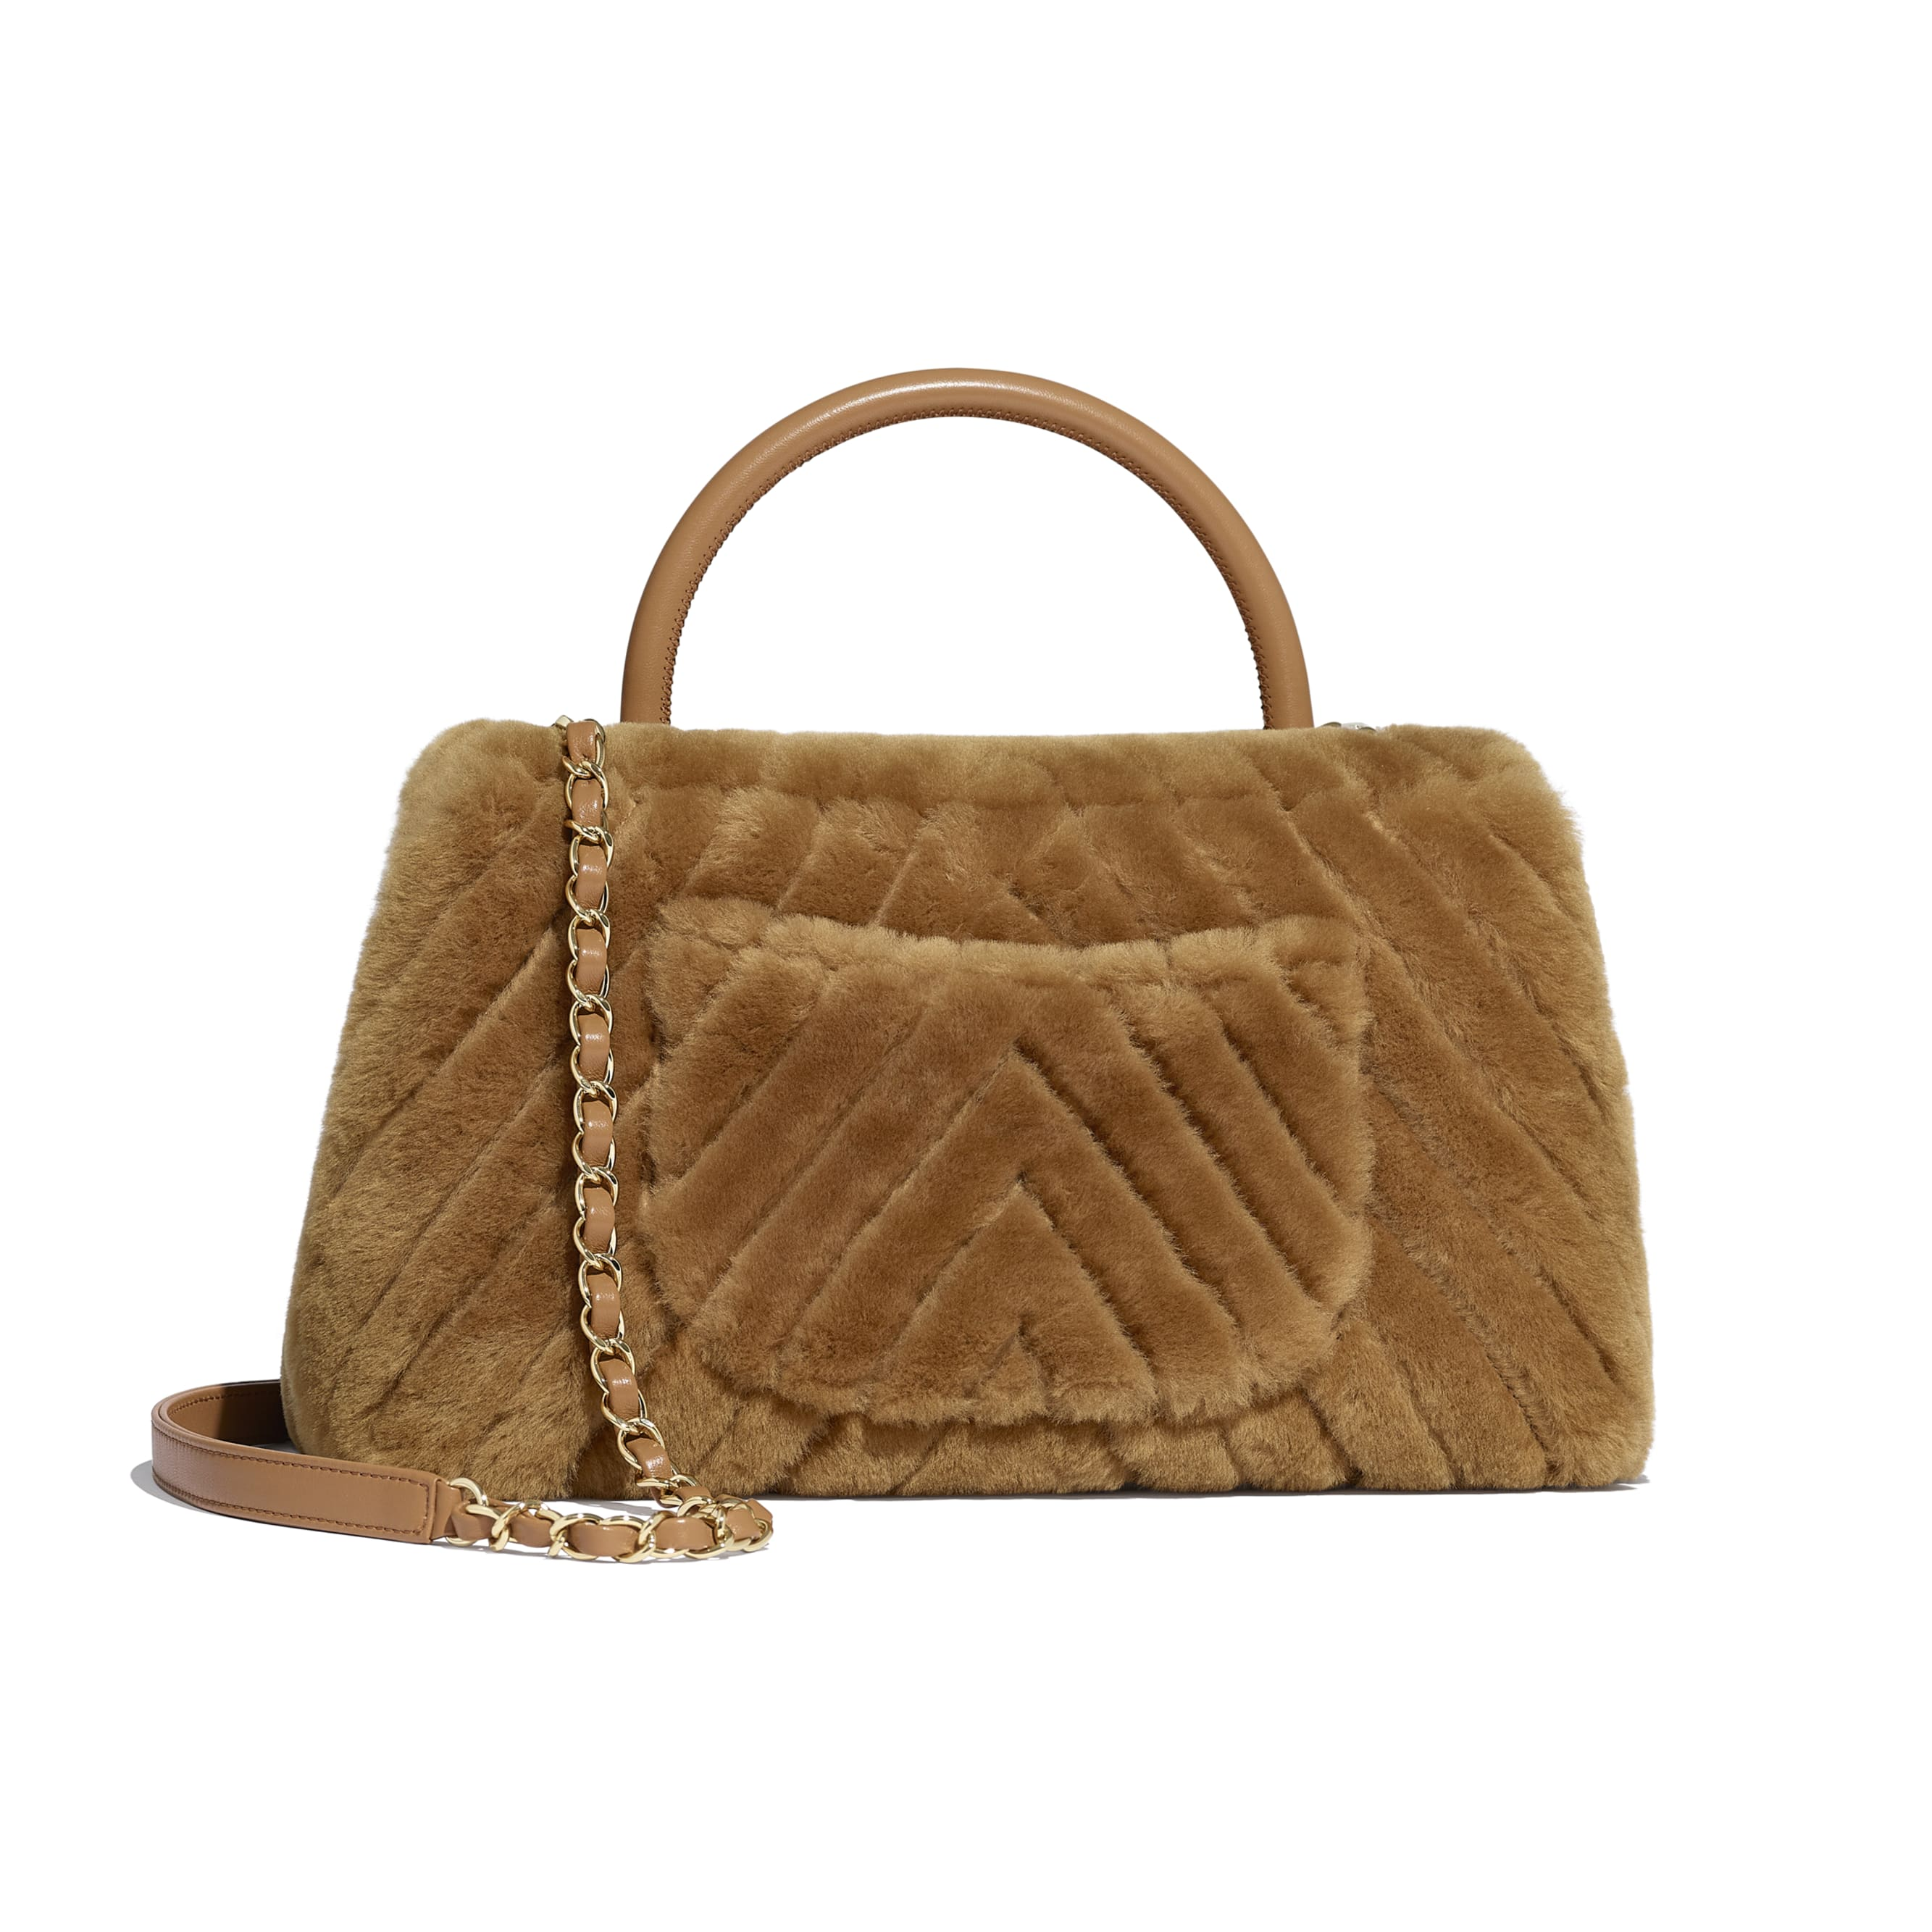 Flap Bag With Top Handle - Beige - Shearling Lambskin, Lambskin &Gold-Tone Metal - Alternative view - see standard sized version